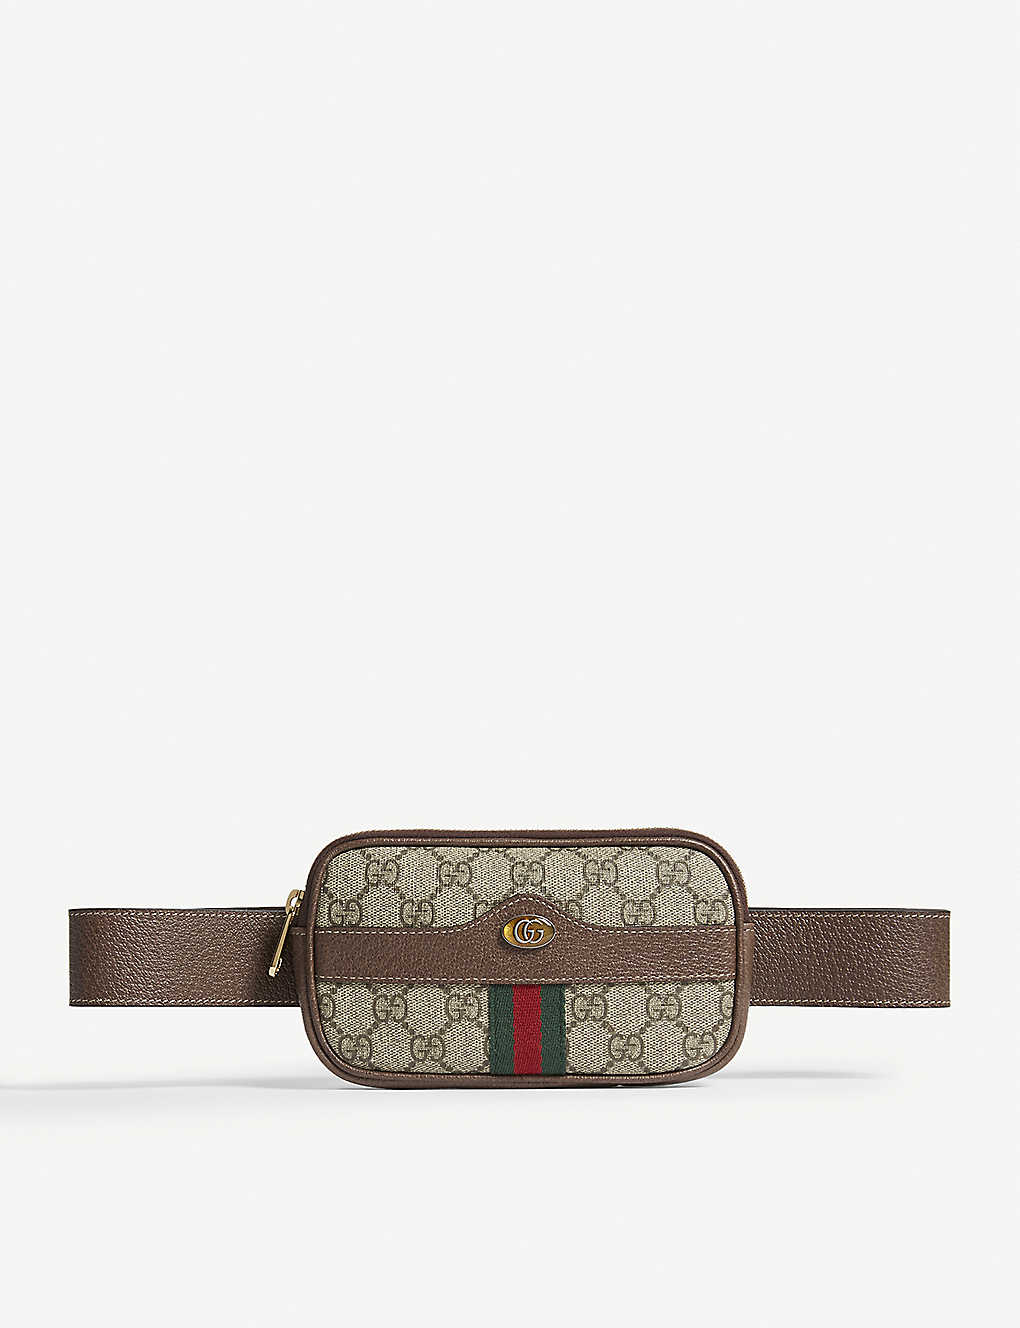 5b8050be488a GUCCI - Ophidia mini GG Supreme belt bag | Selfridges.com